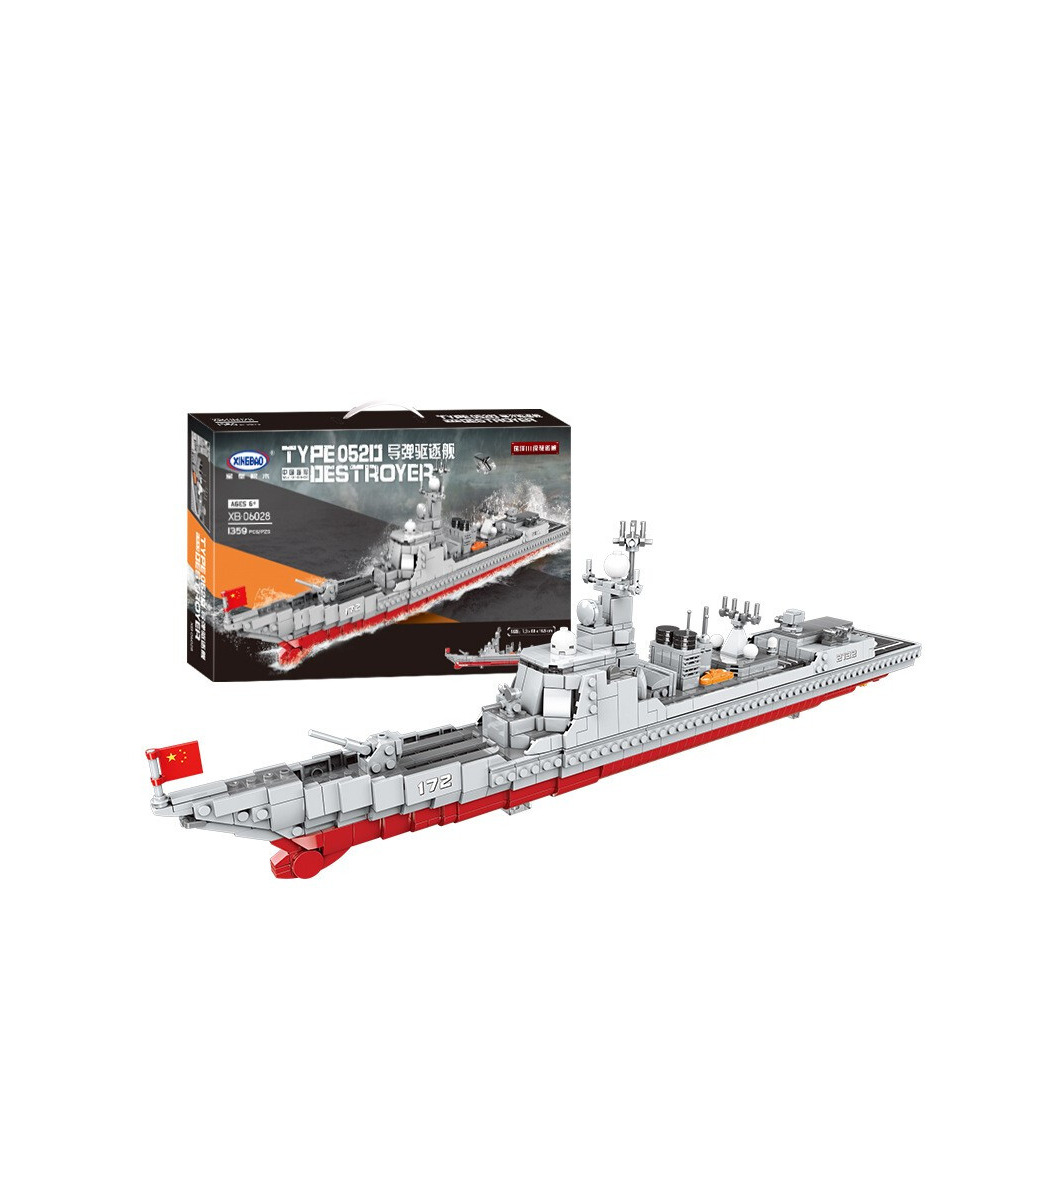 XINGBAO 06028 The Missile Destroyer Army Military Building Bricks Toy Set, (MOC Custom Brick Sets, Compatible Building Blocks Toys Ideas, Building Bricks Meaning)